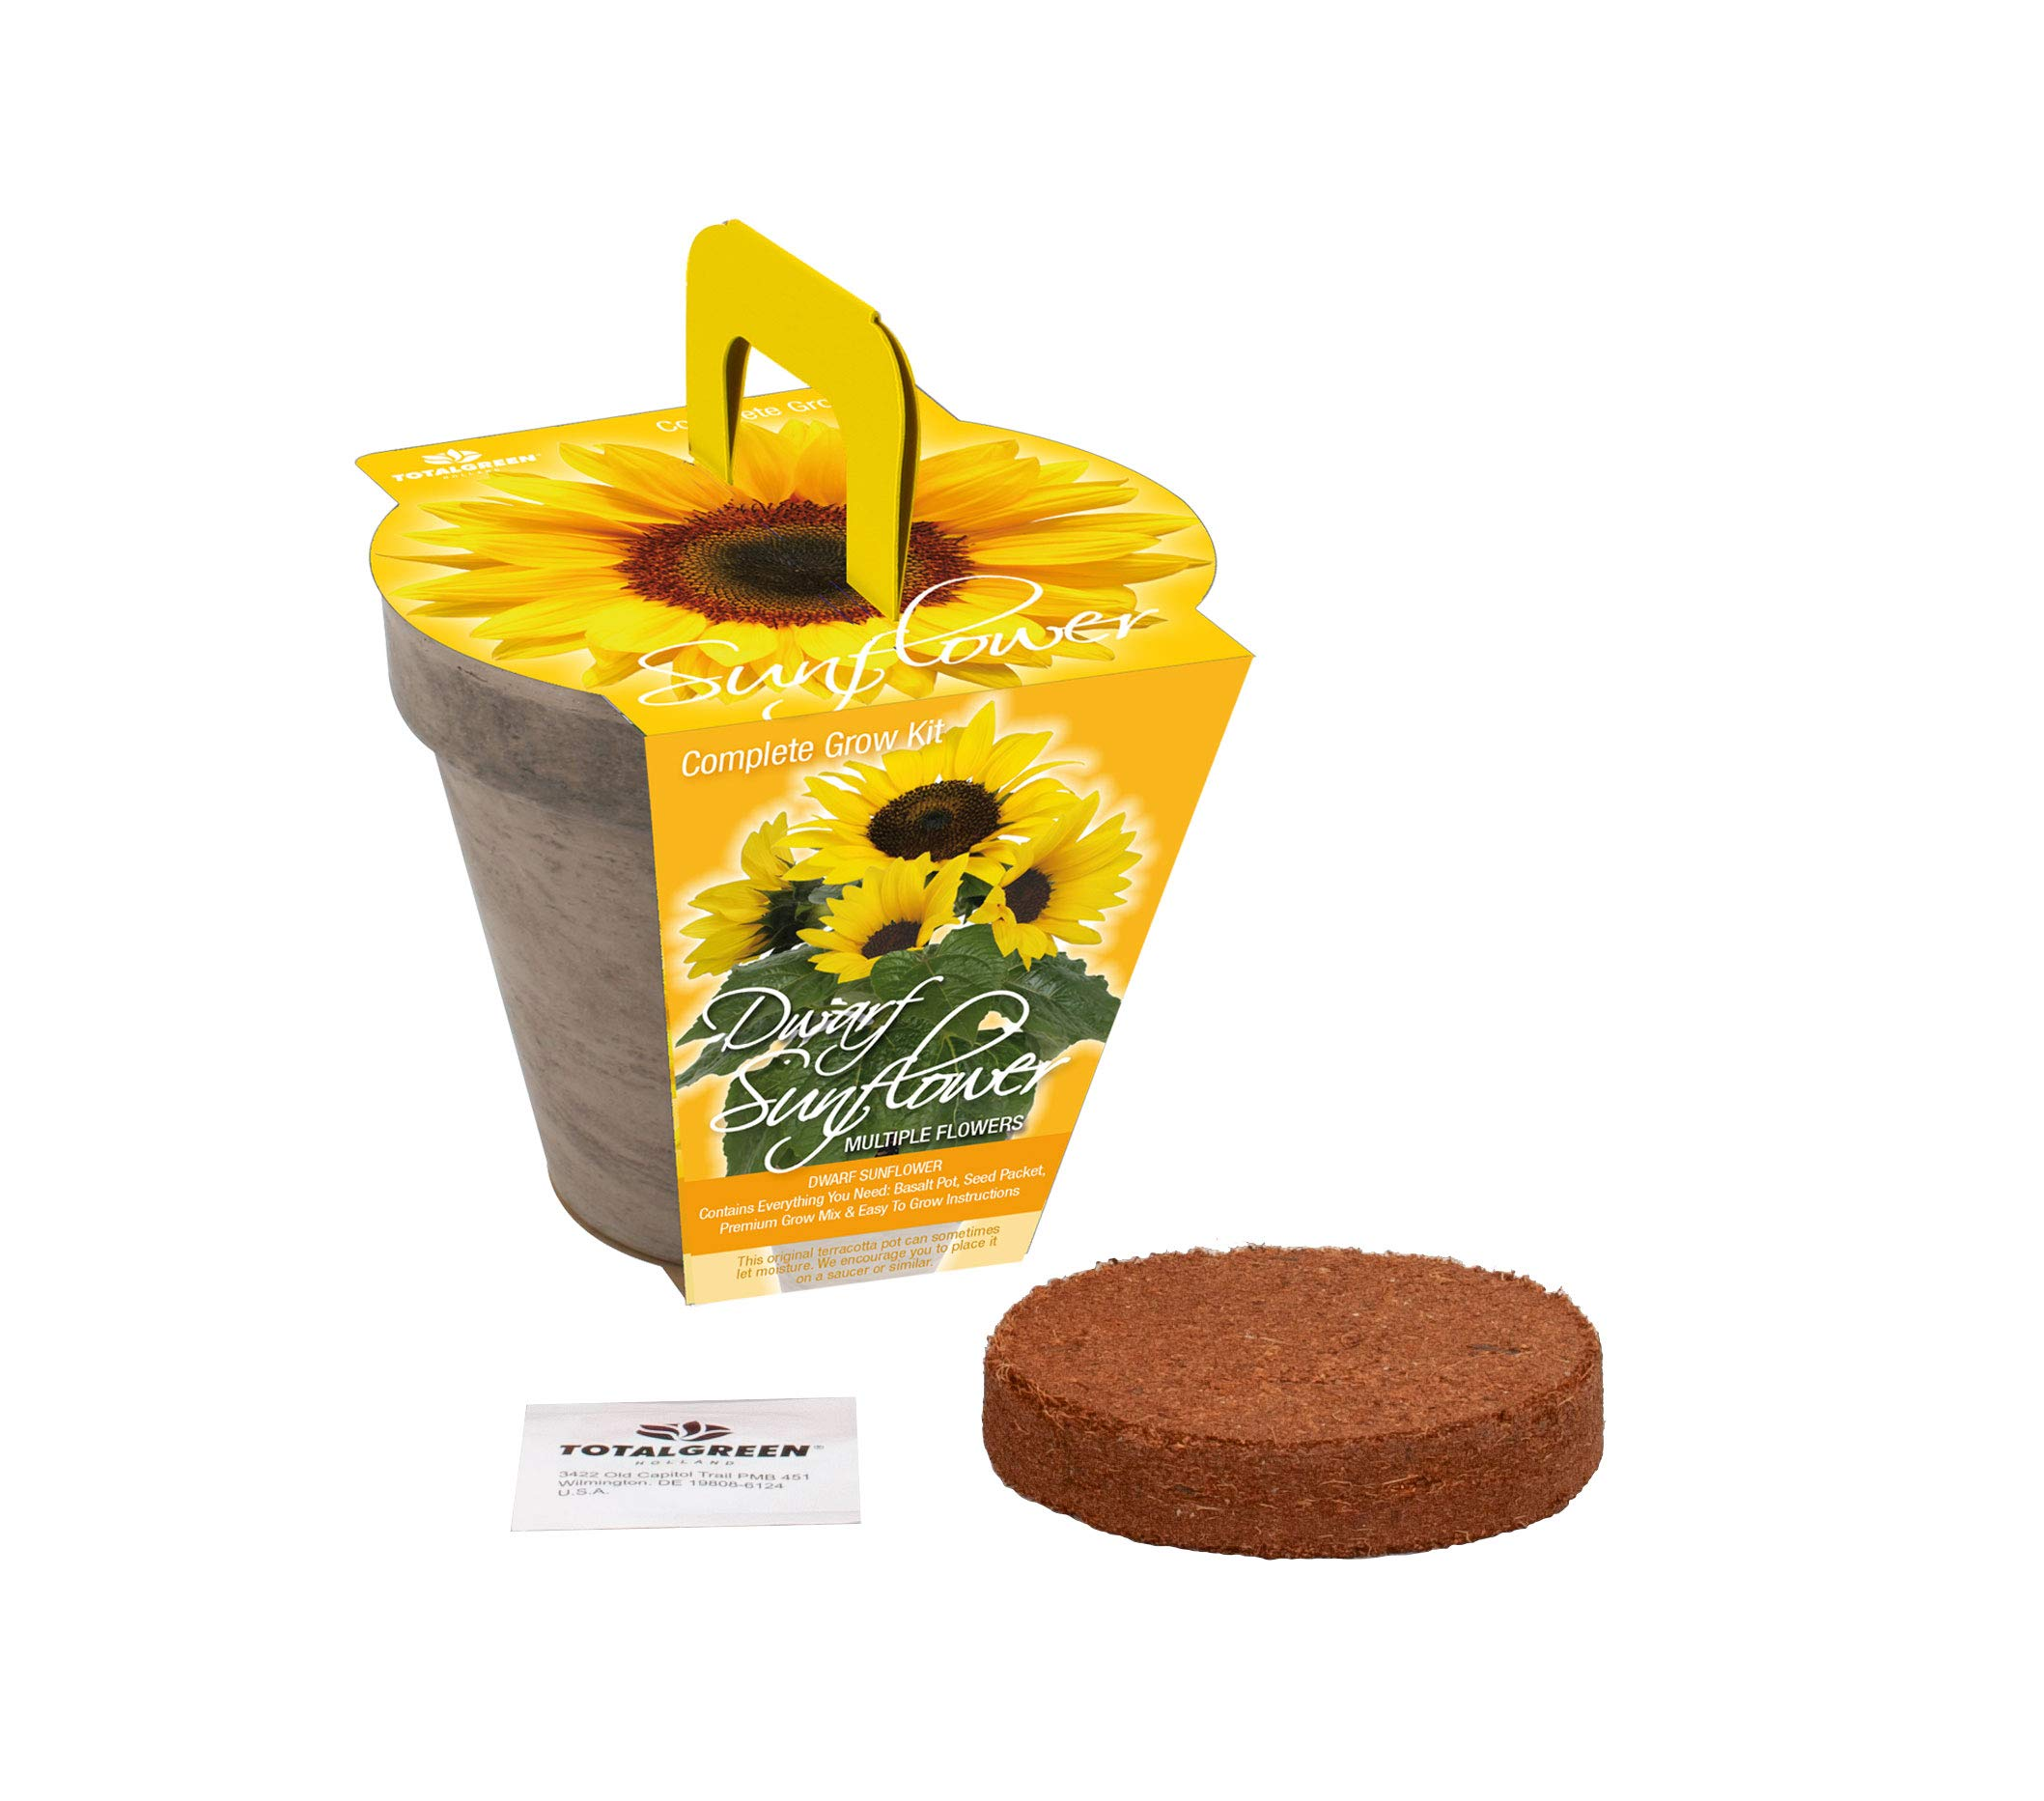 Quality Sunflower Grow Kit | Grow Your Own Unique Dwarf Sunflower from Seed in Just A Few Weeks | Unique Basalt Pot, Non-GMO Mother's Day Gardening Kit with Easy Instructions | by TotalGreen Holland (Image #2)